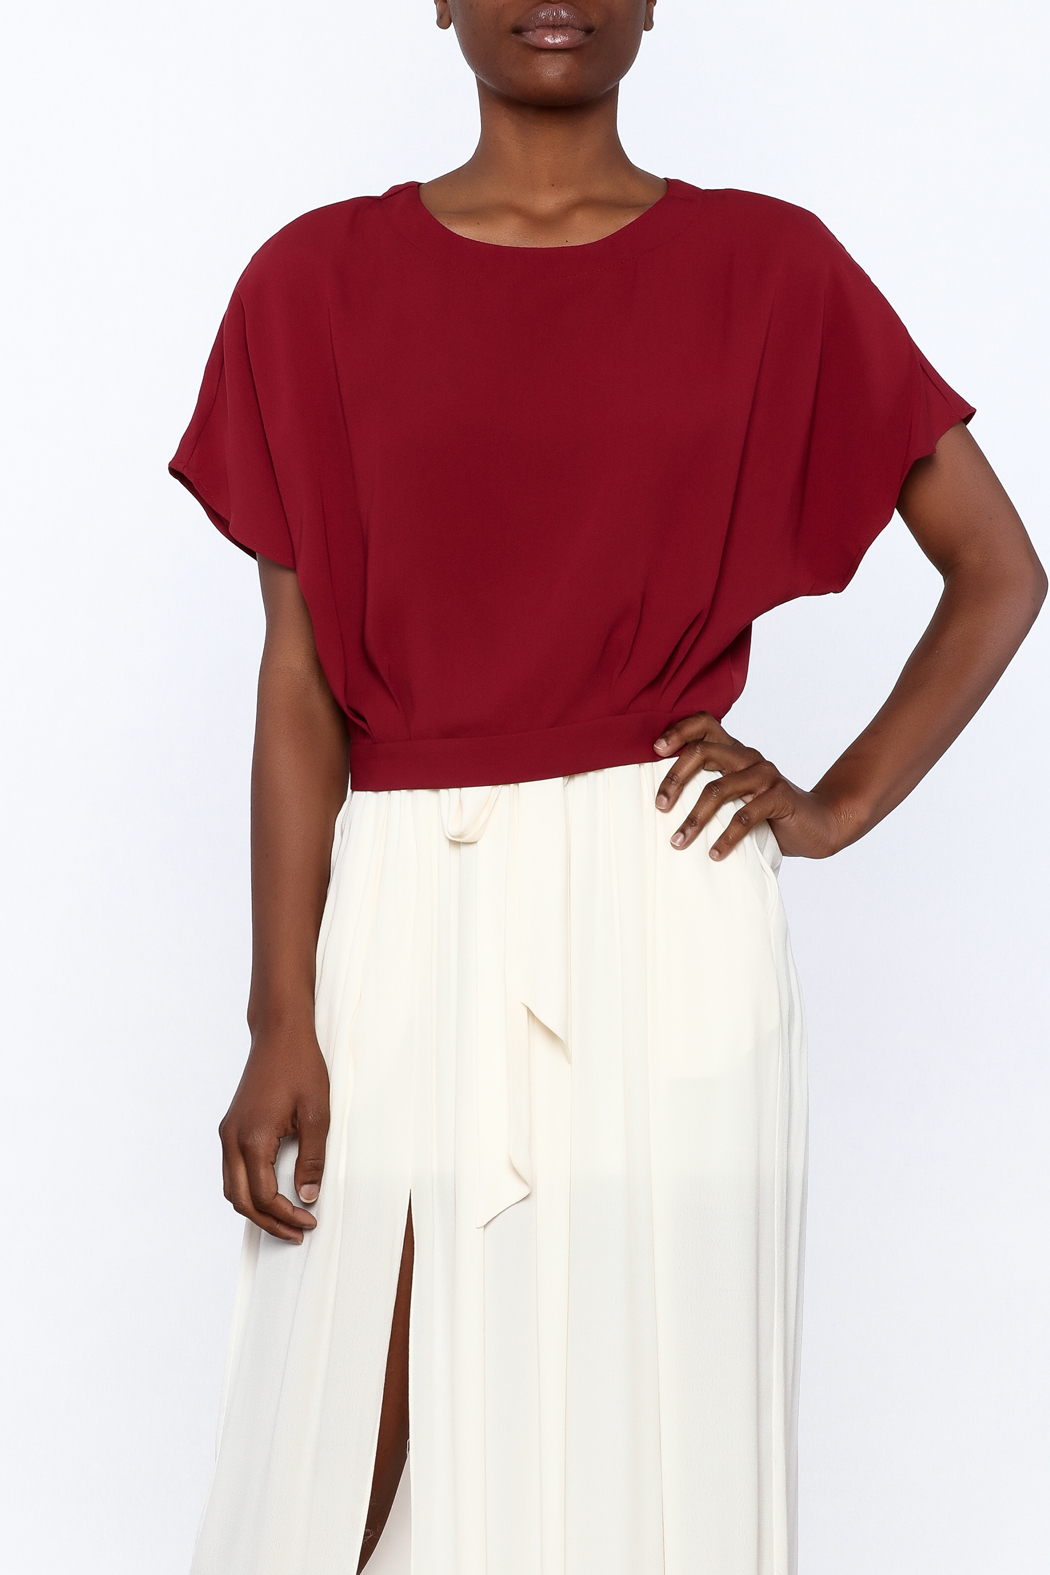 Alythea Burgundy Woven Top - Main Image